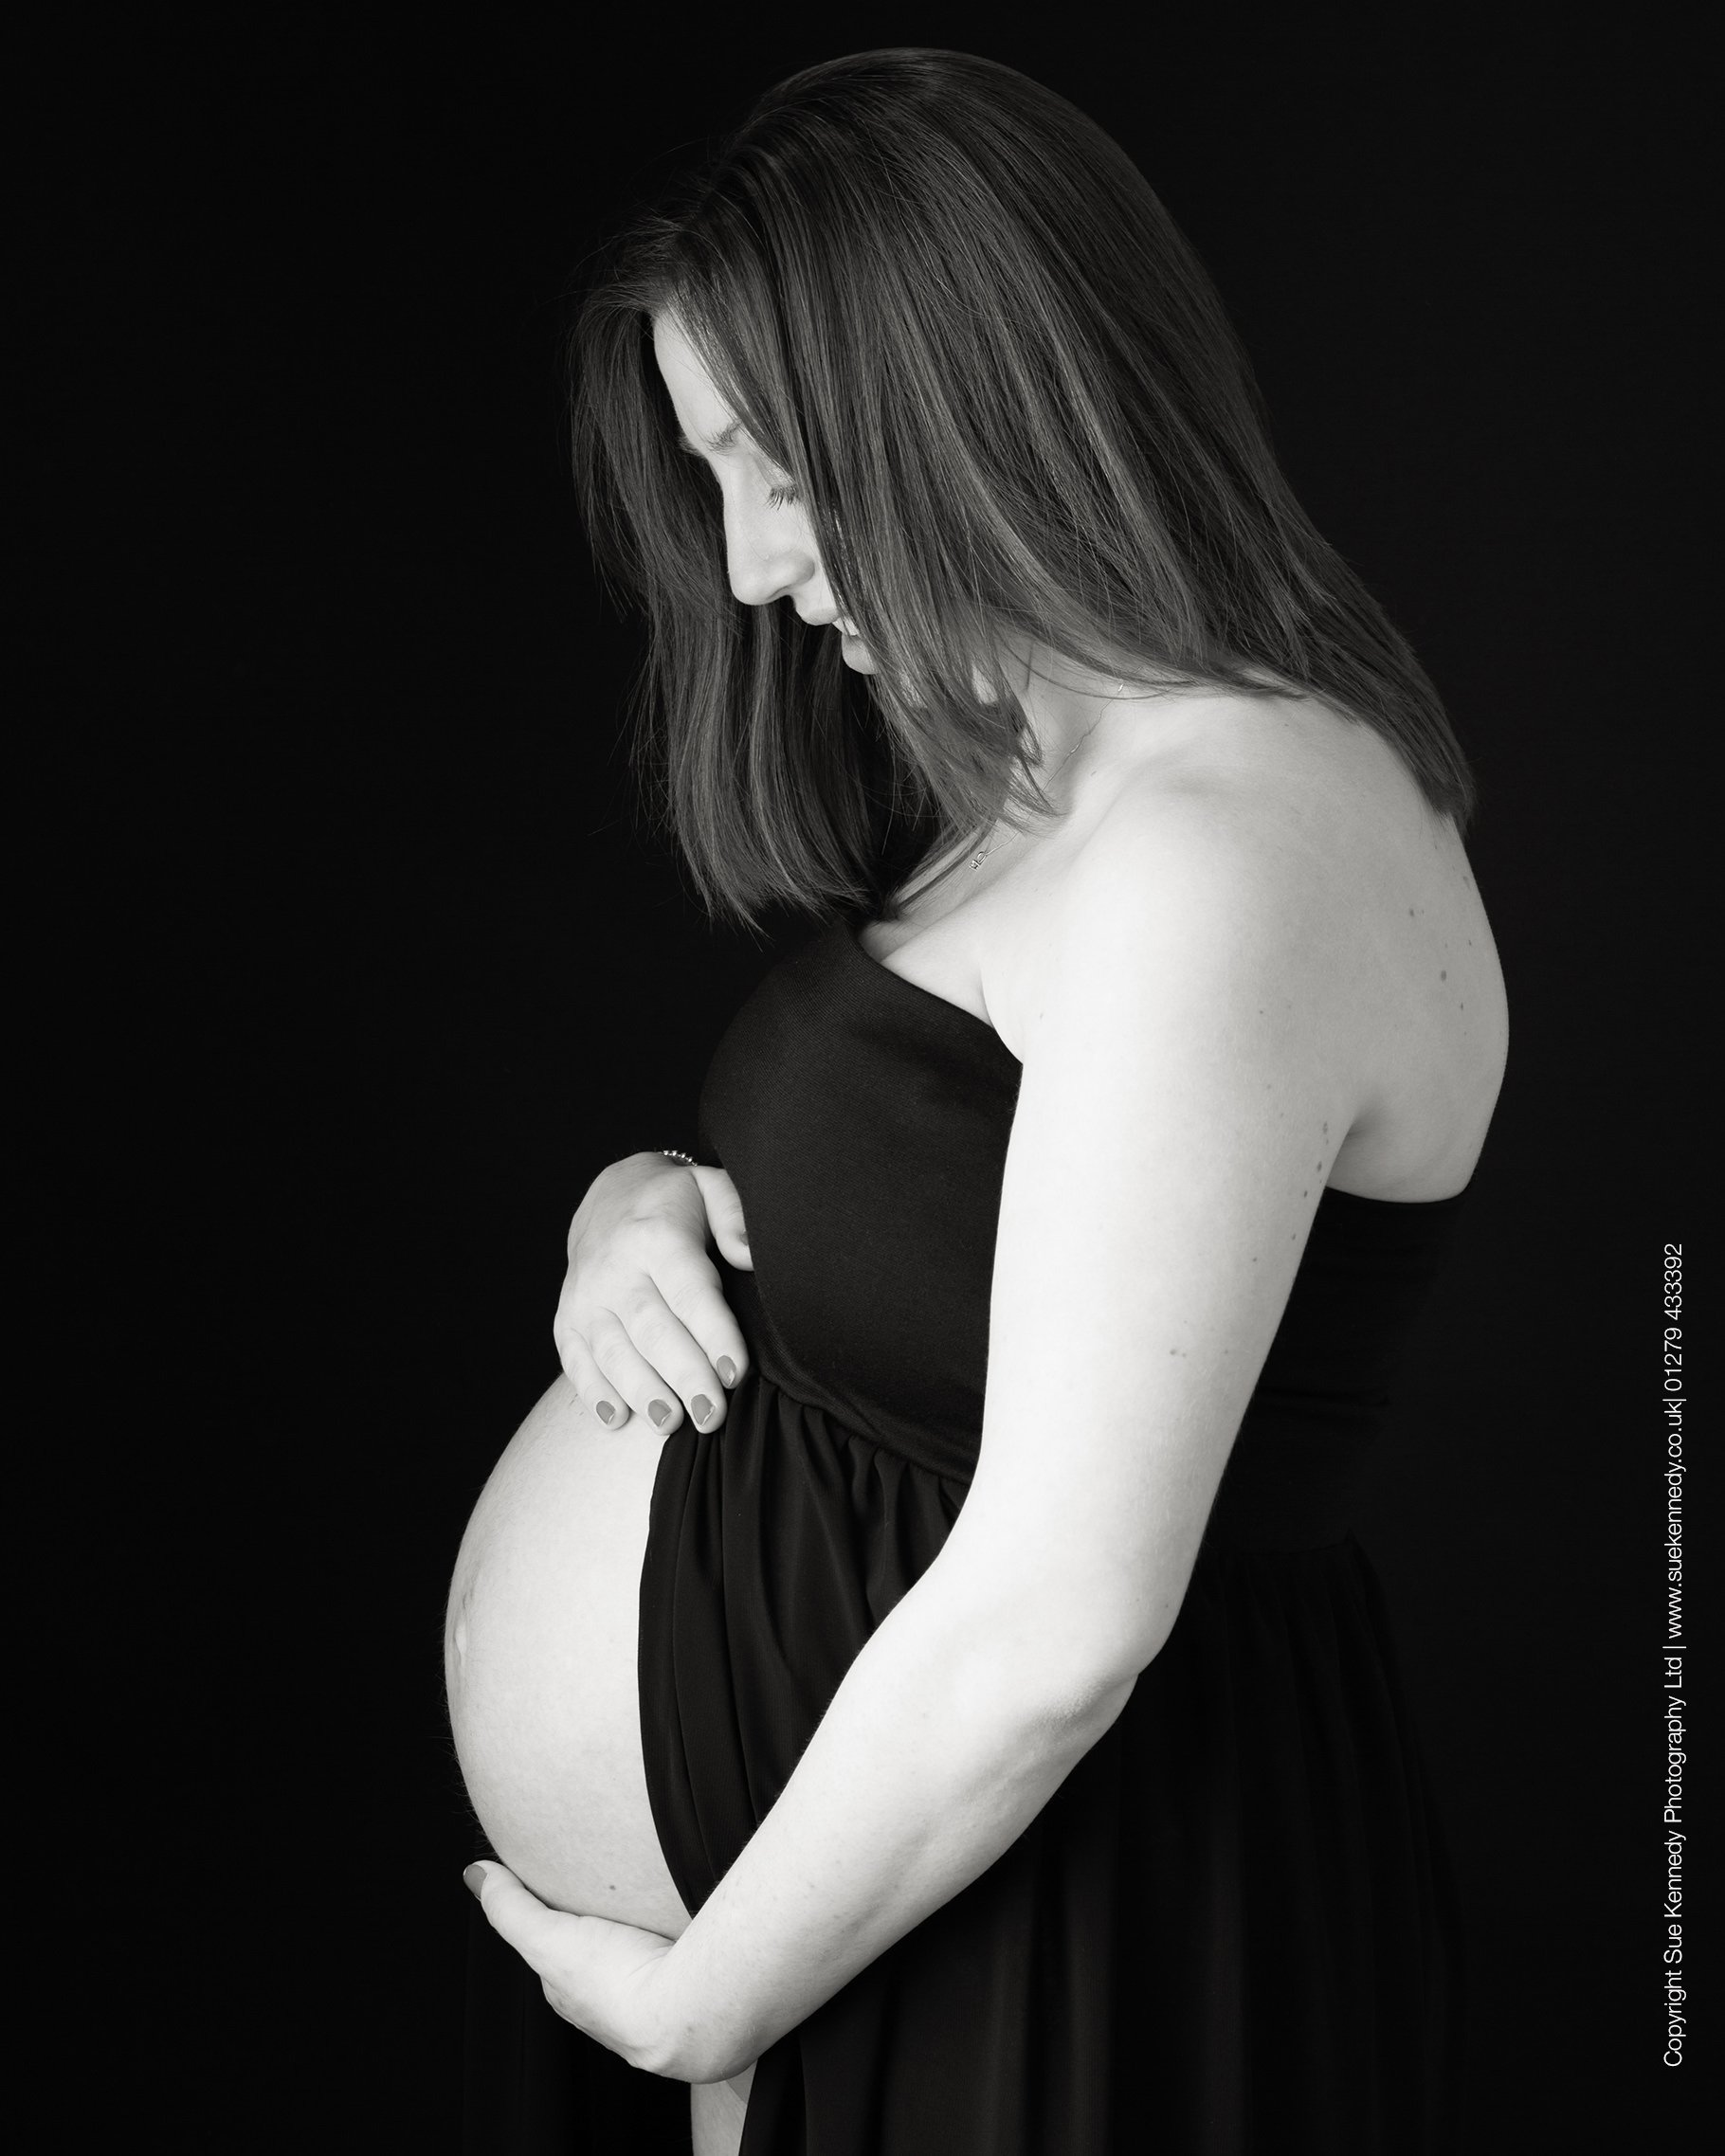 maternity photography by Sue Kennedy Photography ltd - 01279 433392